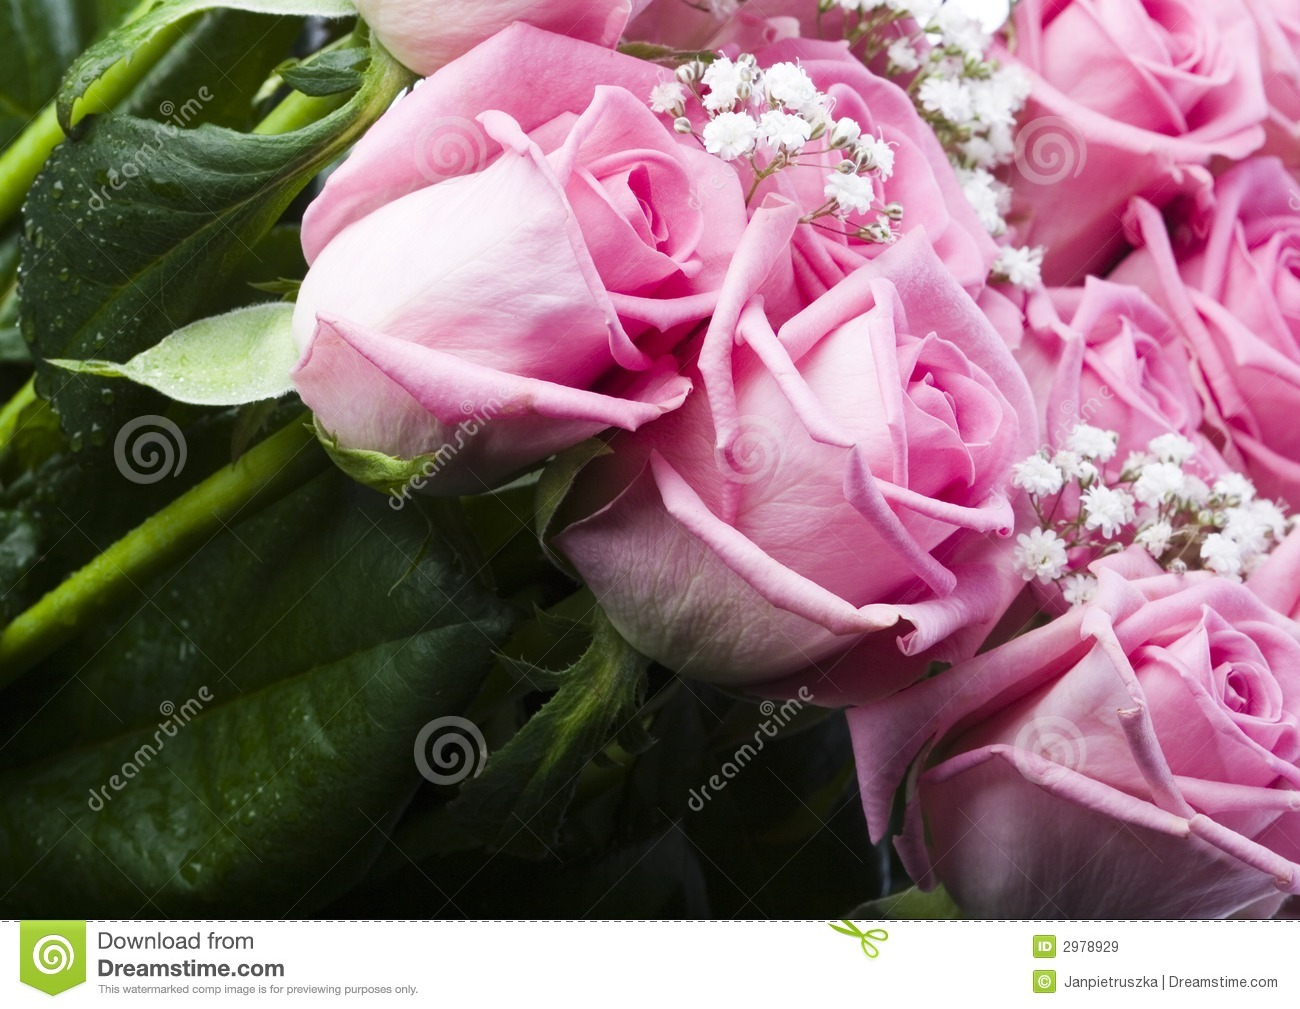 Beautiful flowers stock image image of nature love blossom 2978929 royalty free stock photo izmirmasajfo